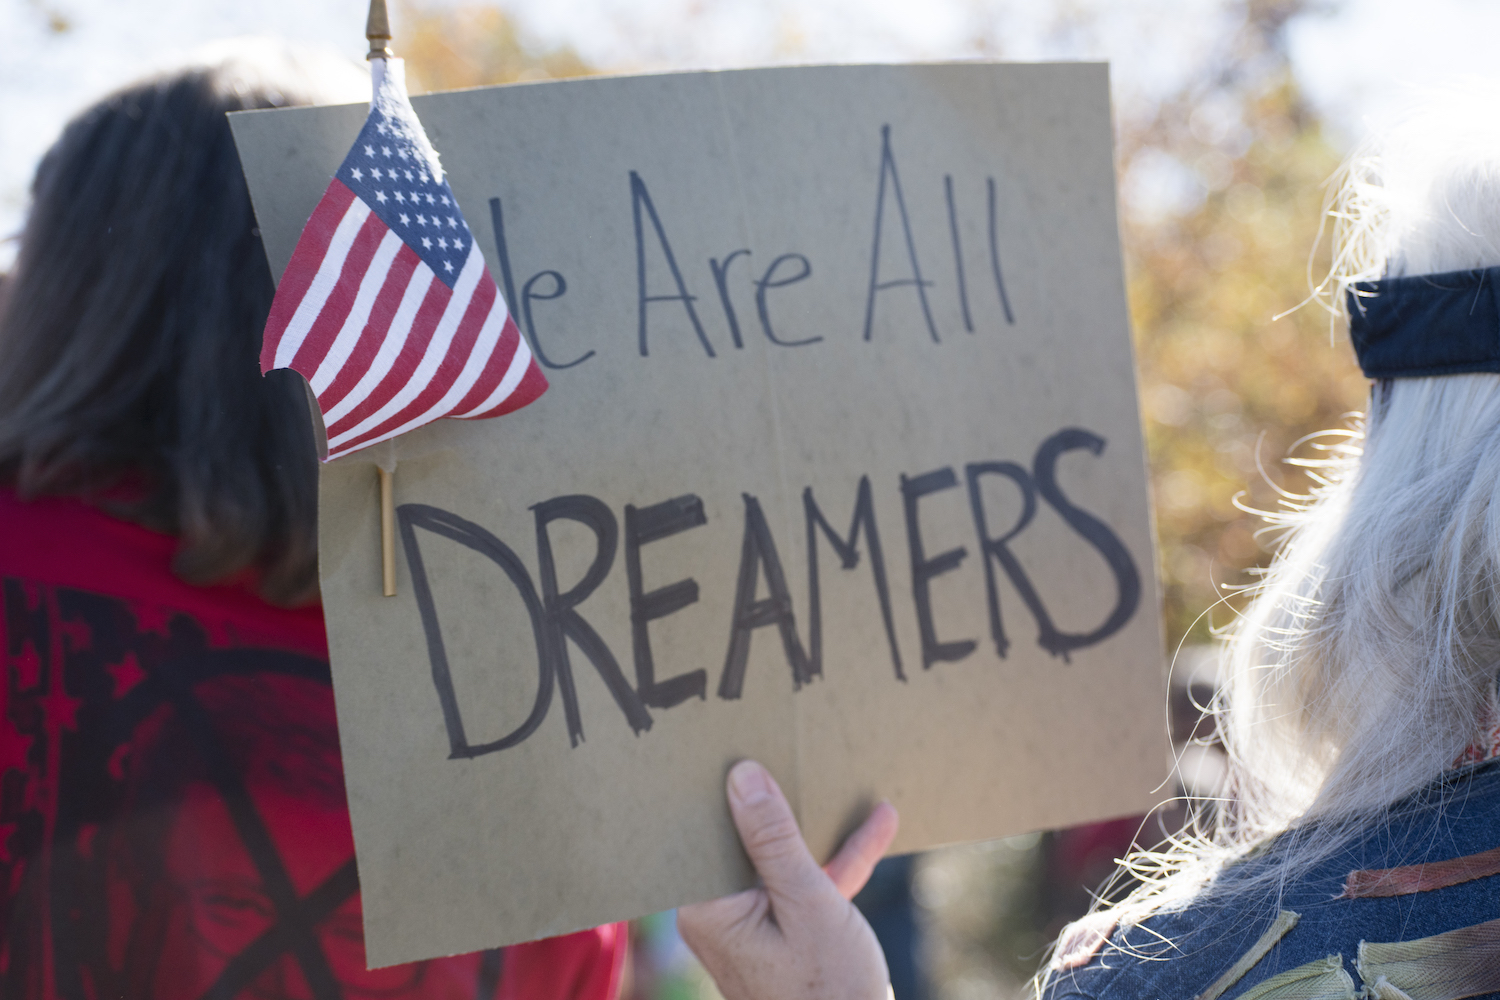 A sign held by a demonstrator at a 2017 protest in support of DACA in Reno, Nevada reads: We Are All Dreamers